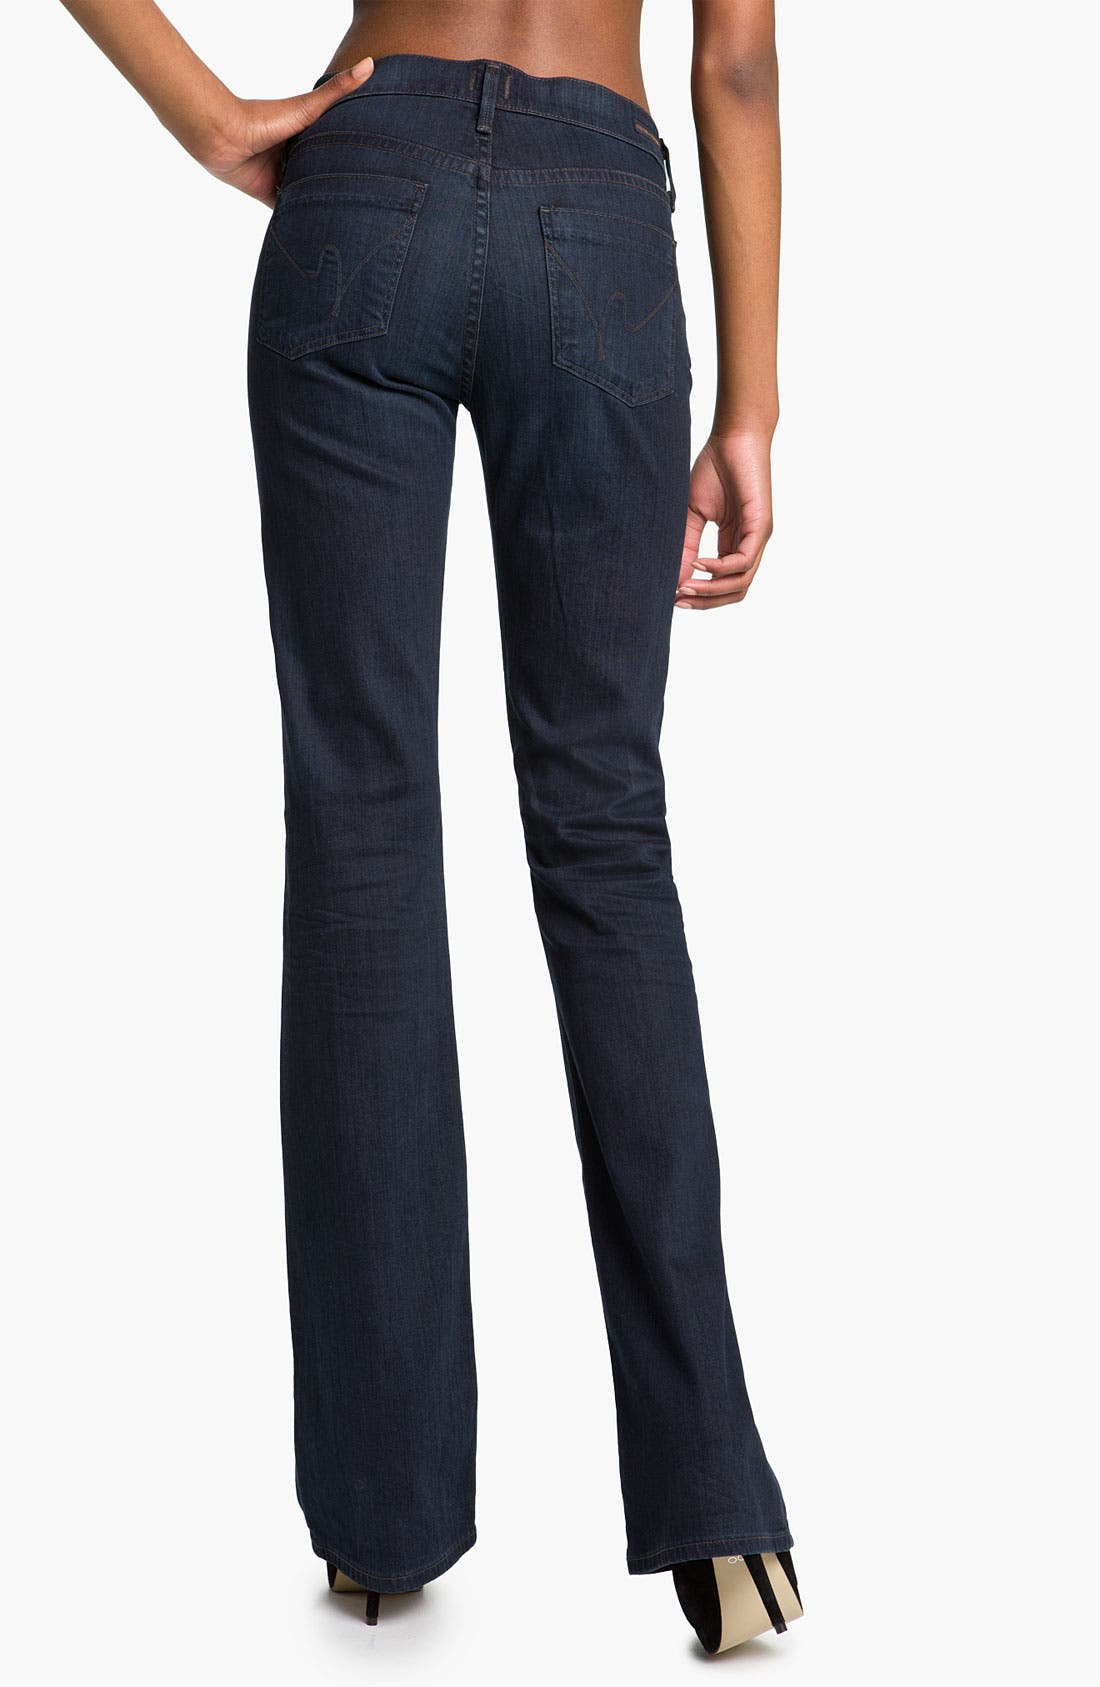 Alternate Image 2  - Citizens of Humanity 'Amber' Mid Rise Bootcut Stretch Jeans (Dark Blue)